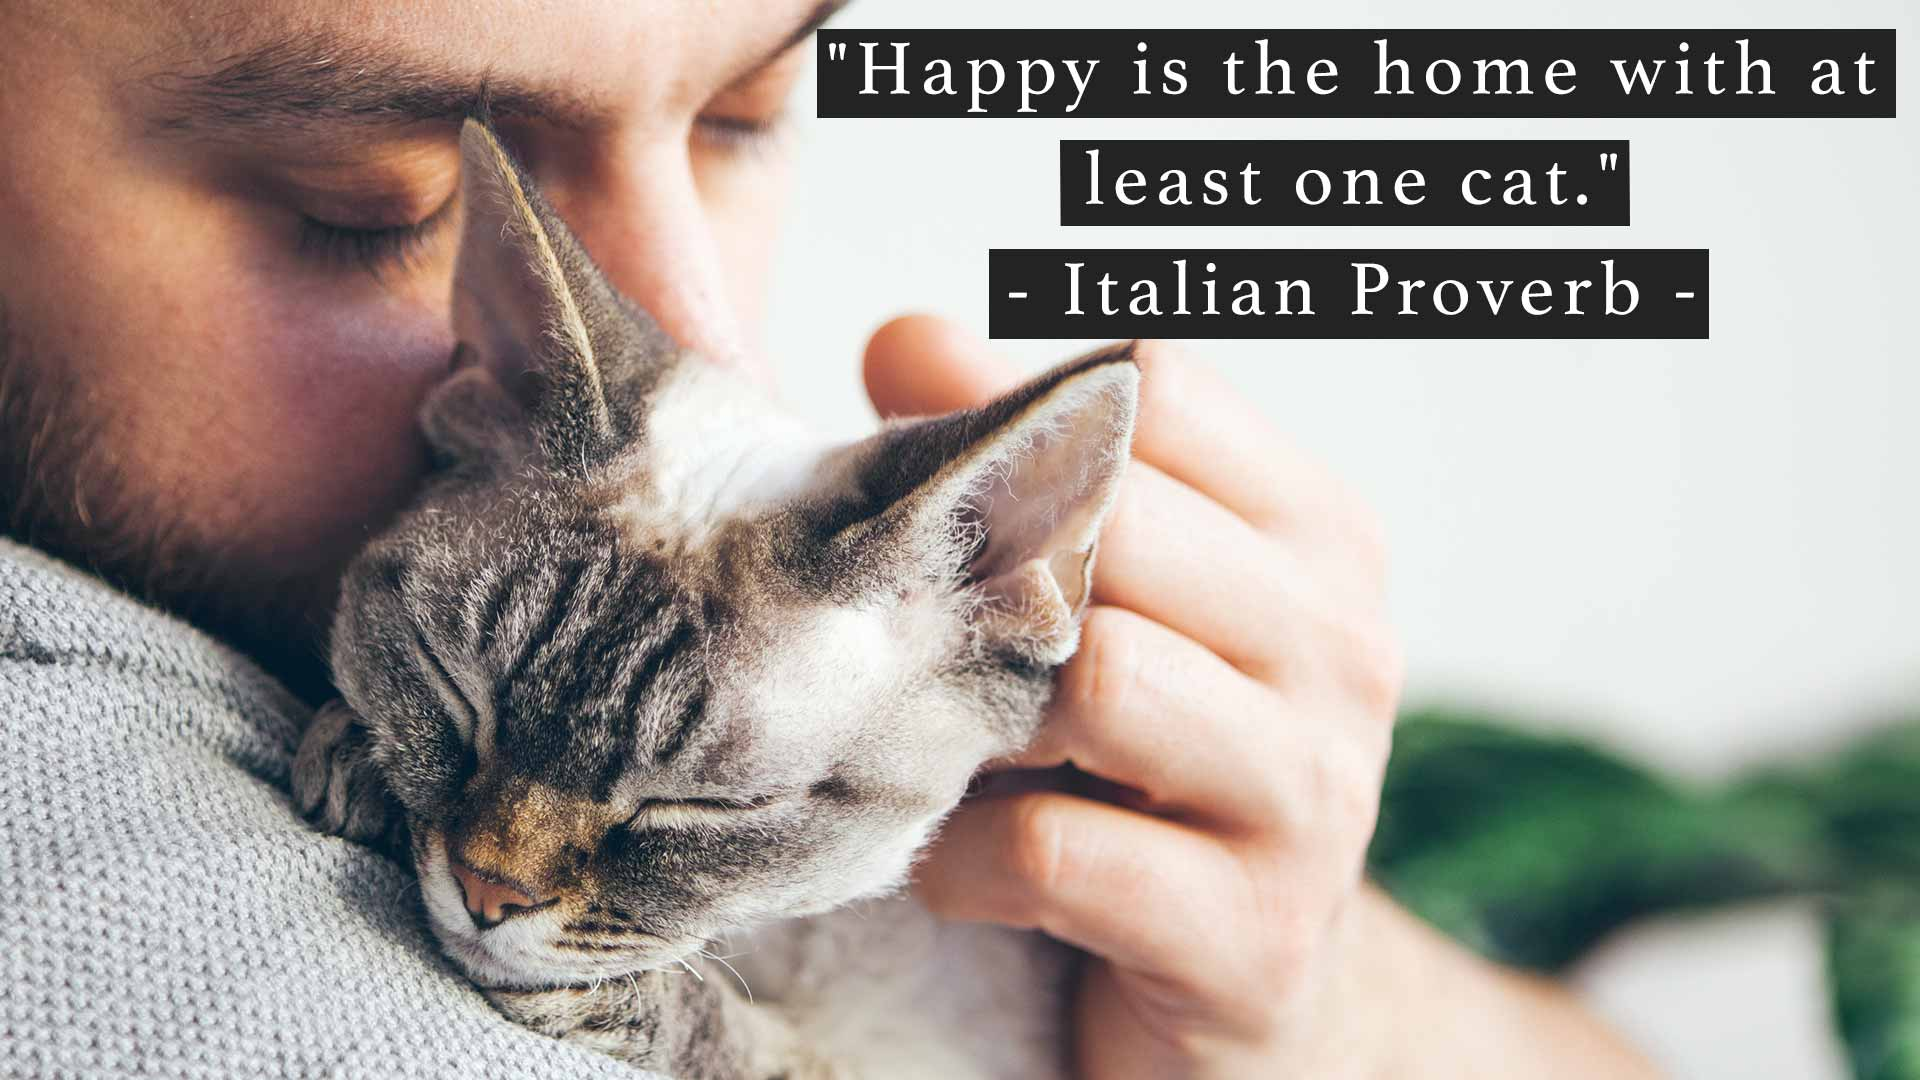 Happy is the home with at least one cat